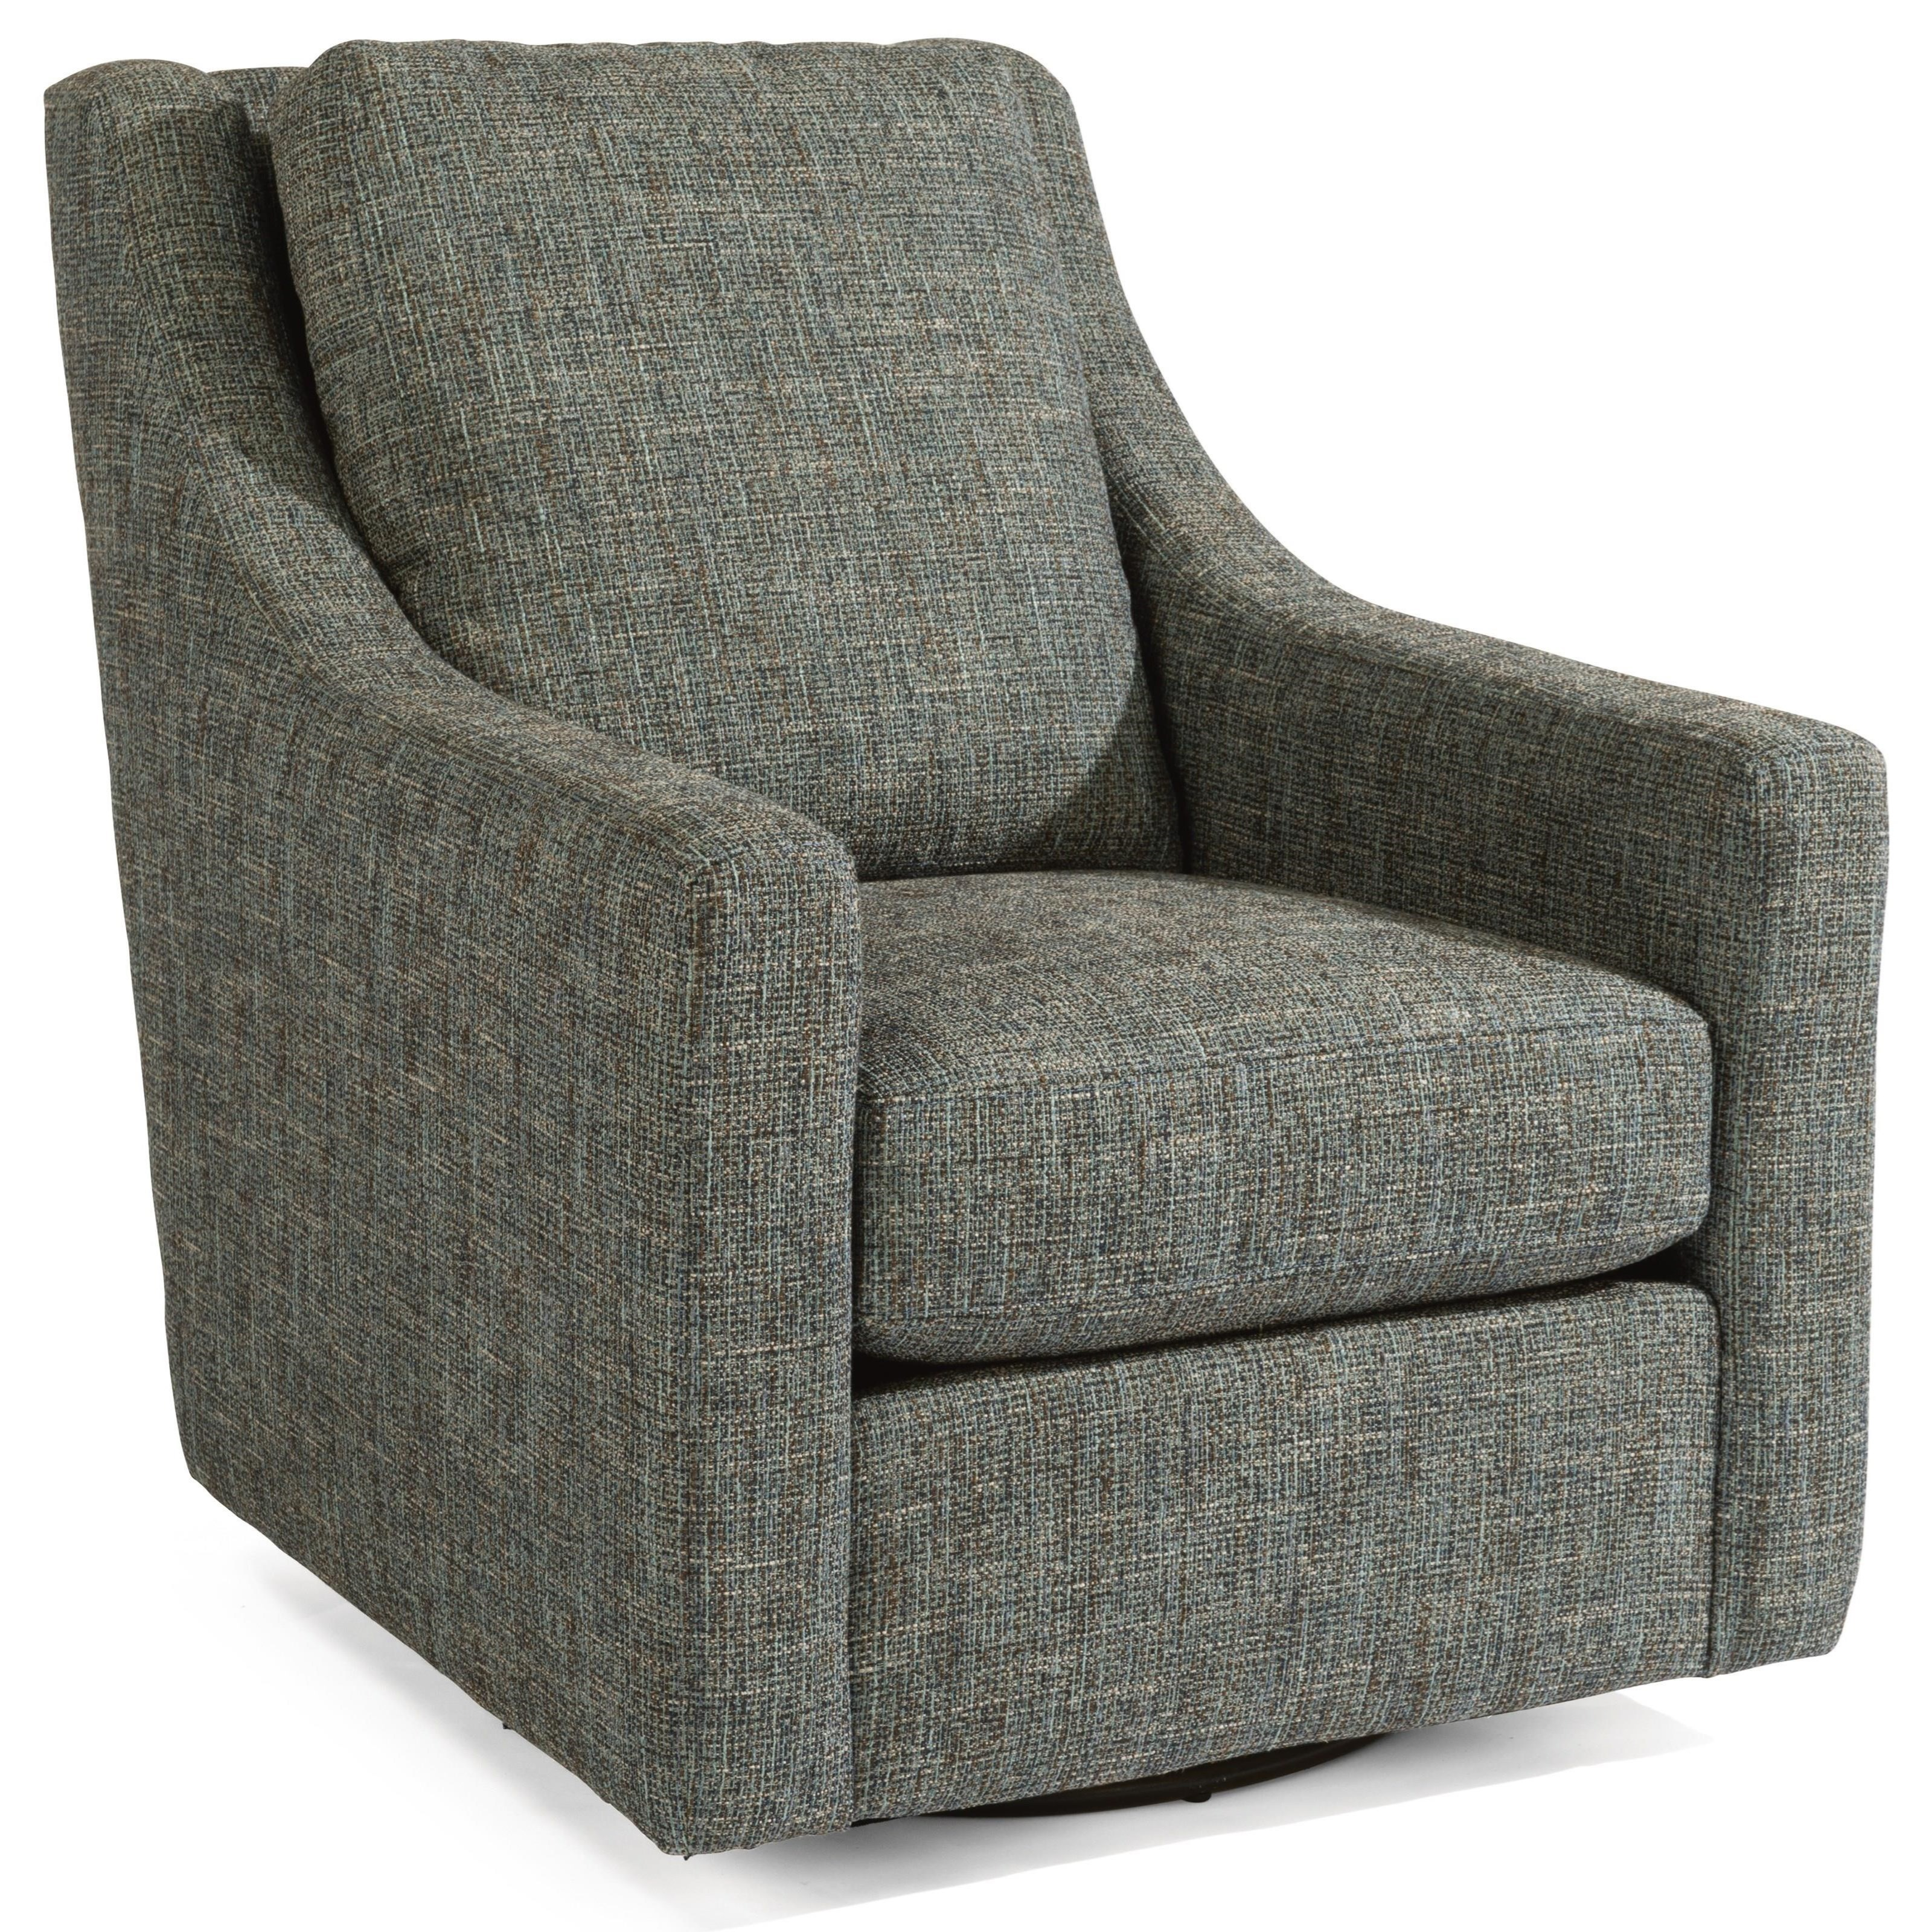 Murph Swivel Chair  by Flexsteel at Crowley Furniture & Mattress